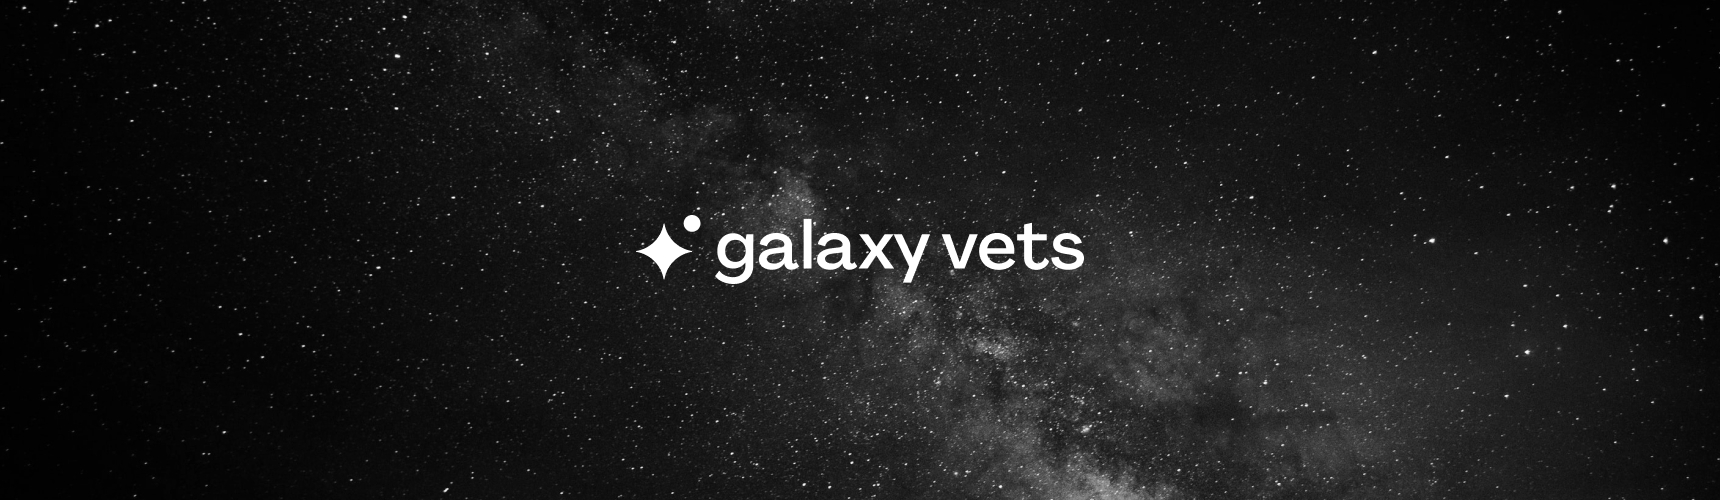 Galaxy Vets and VIS to Pave the Way to the Future of Veterinary Medicine